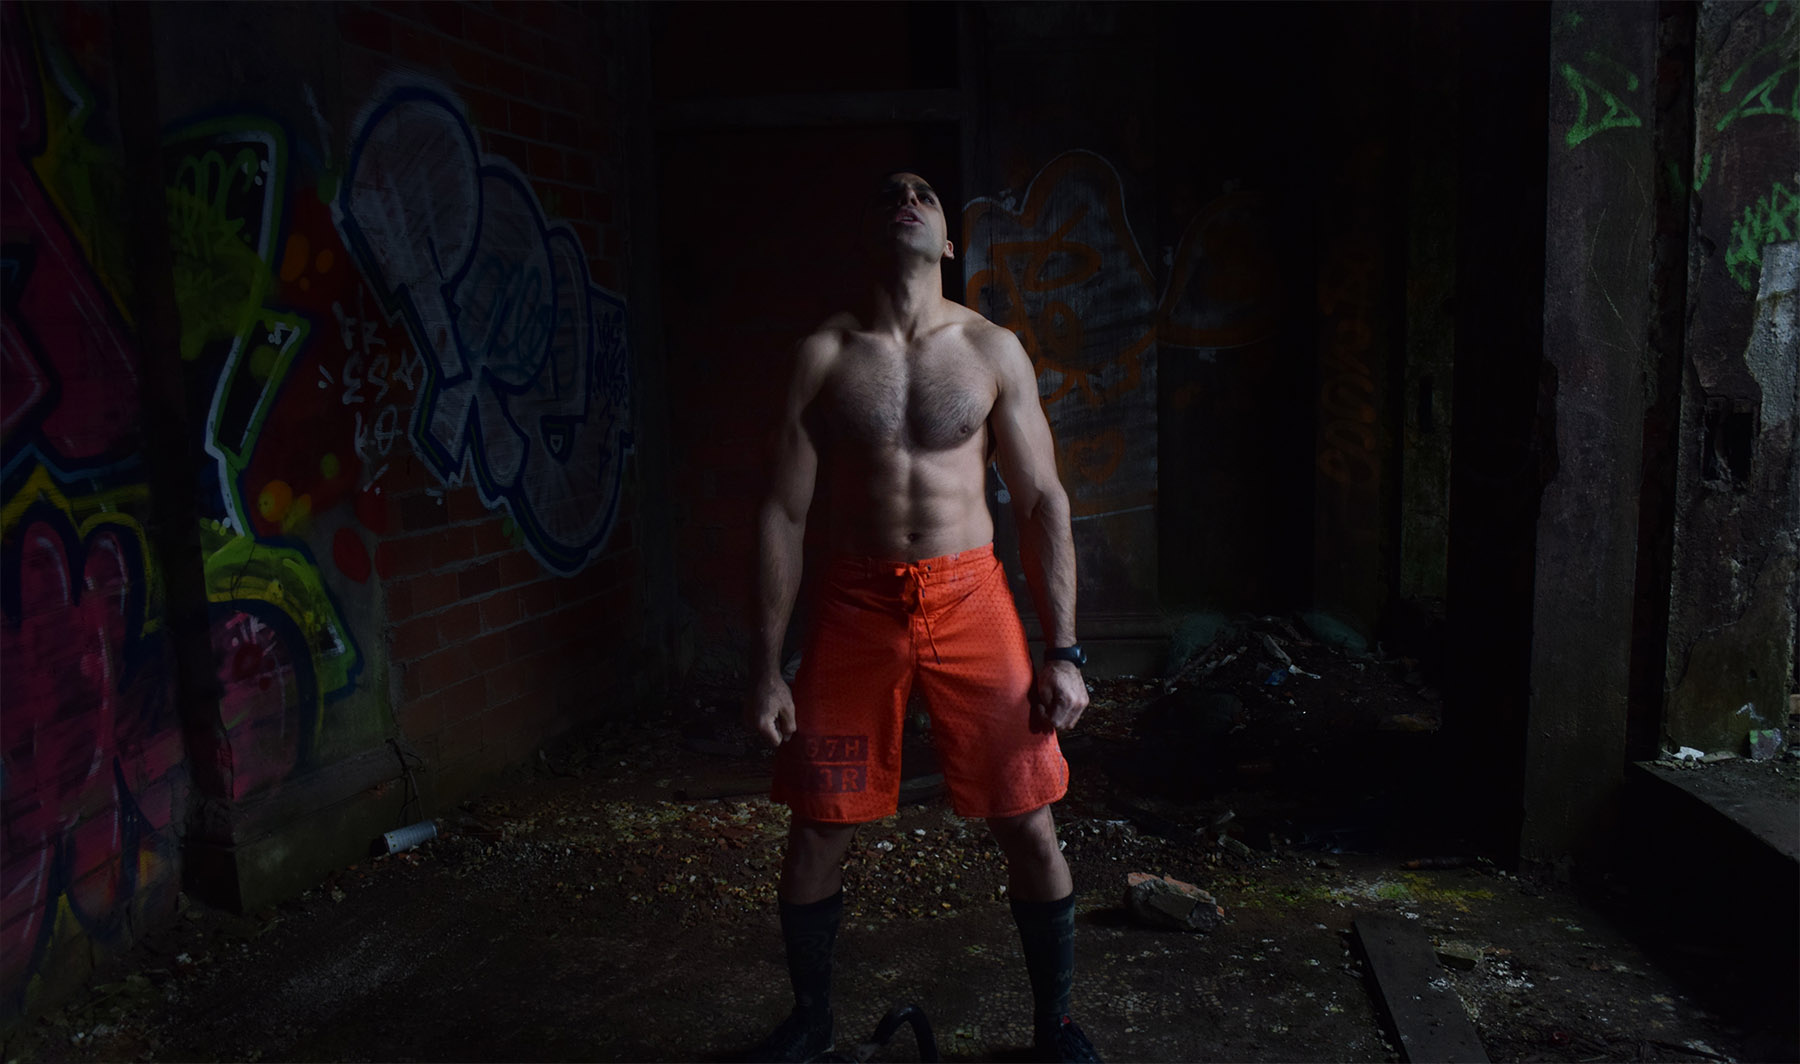 [Podcast] Getting Your Abs To Show With Coach Sam From Abs On Fire